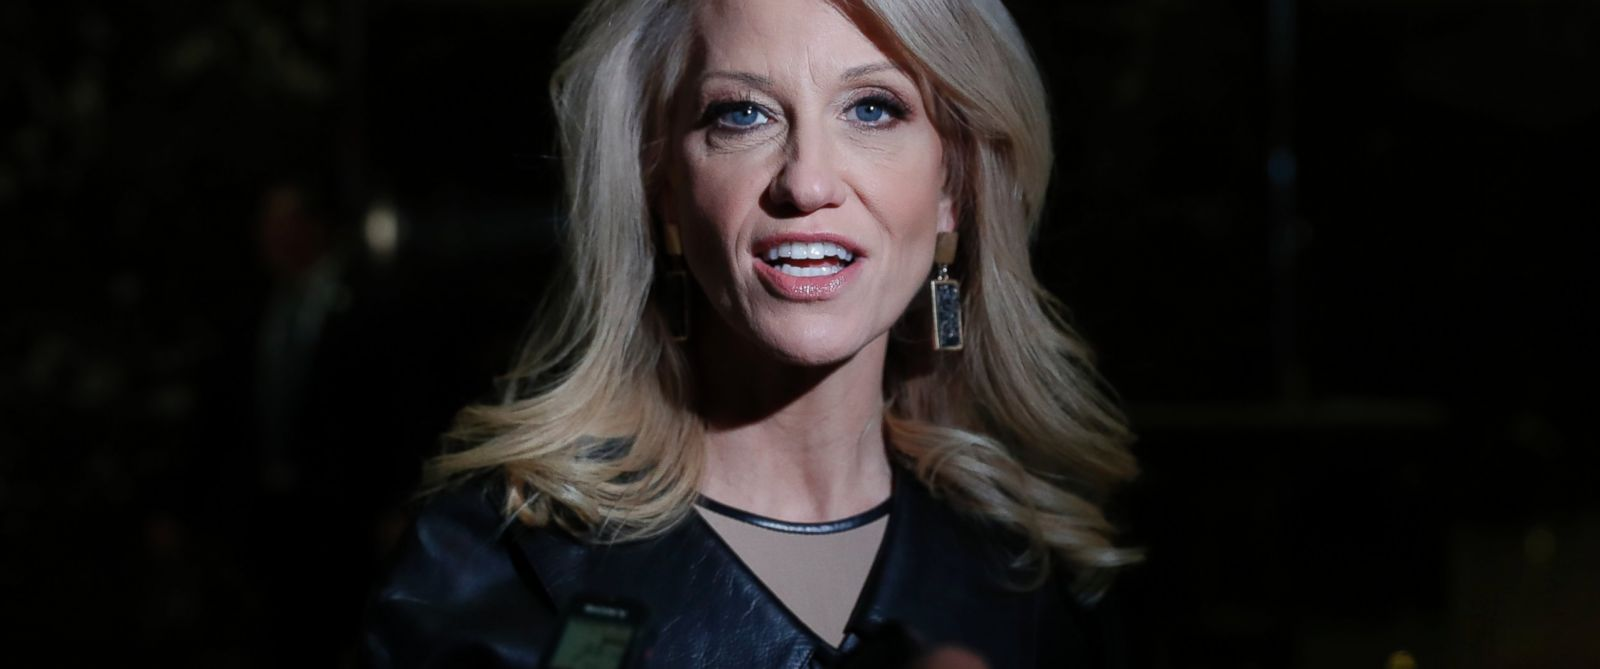 conway s comment on ivanka trump s brand being blown way out of conway s comment on ivanka trump s brand being blown way out of proportion white house adviser